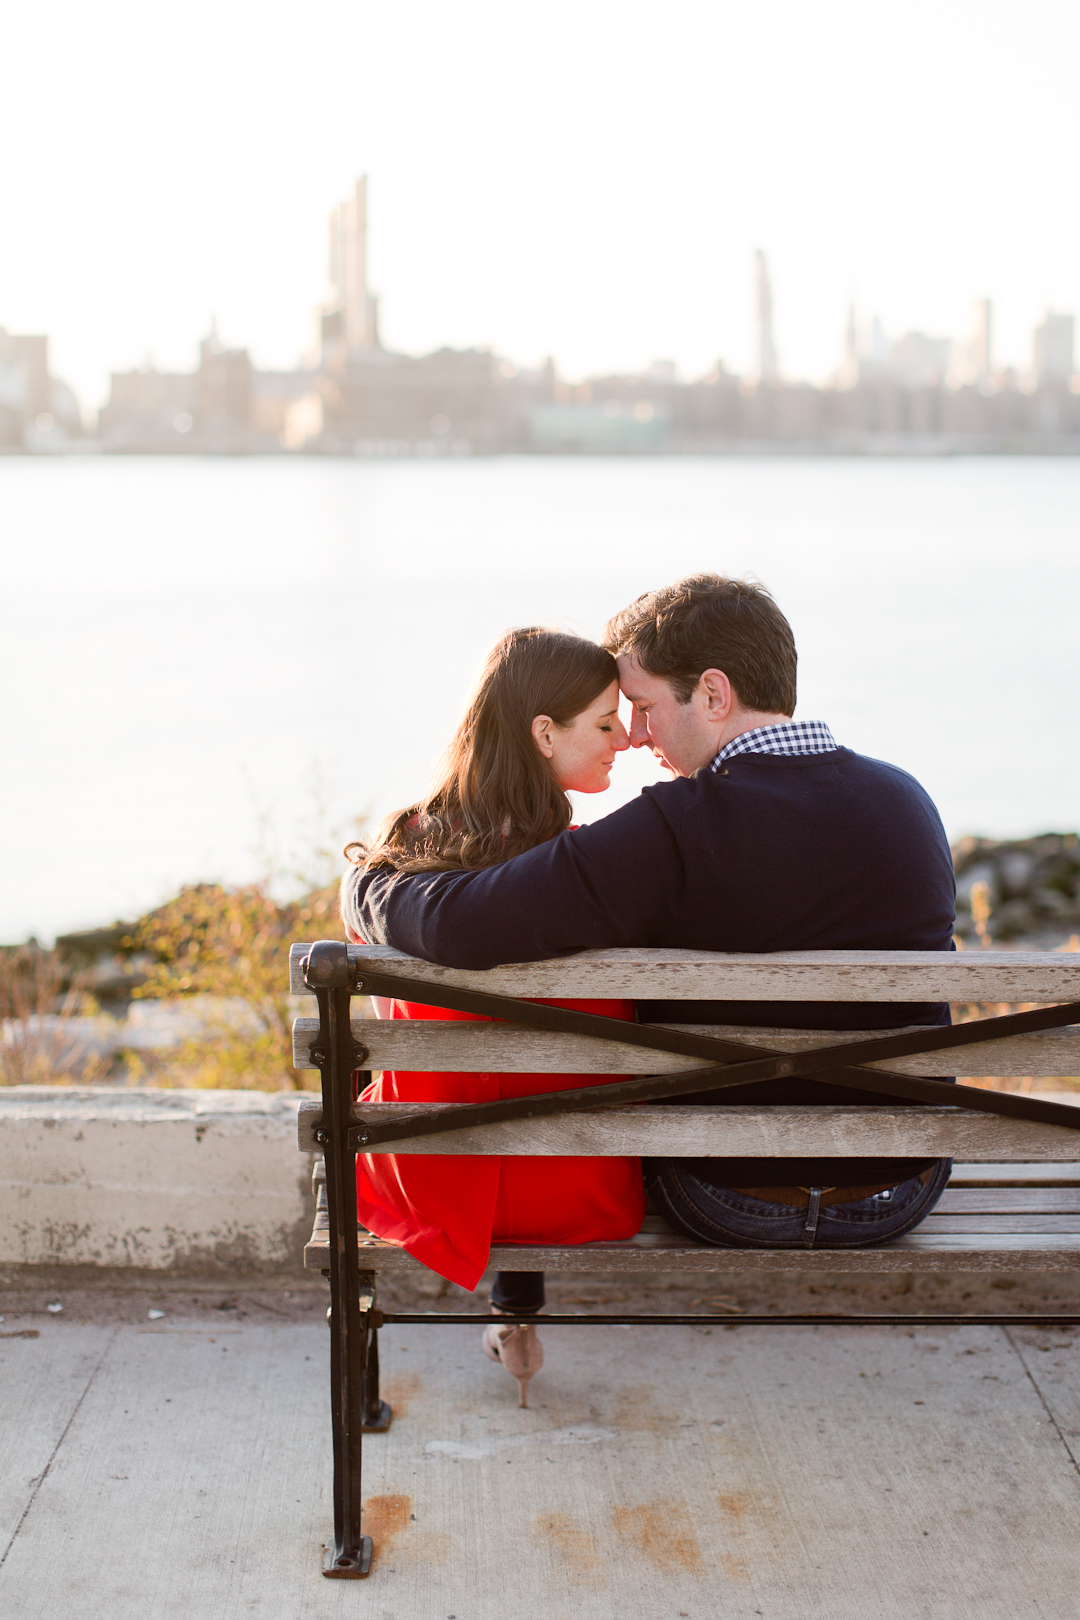 Melissa Kruse Photography - Tess & Brendan Engagement Photos-71.jpg